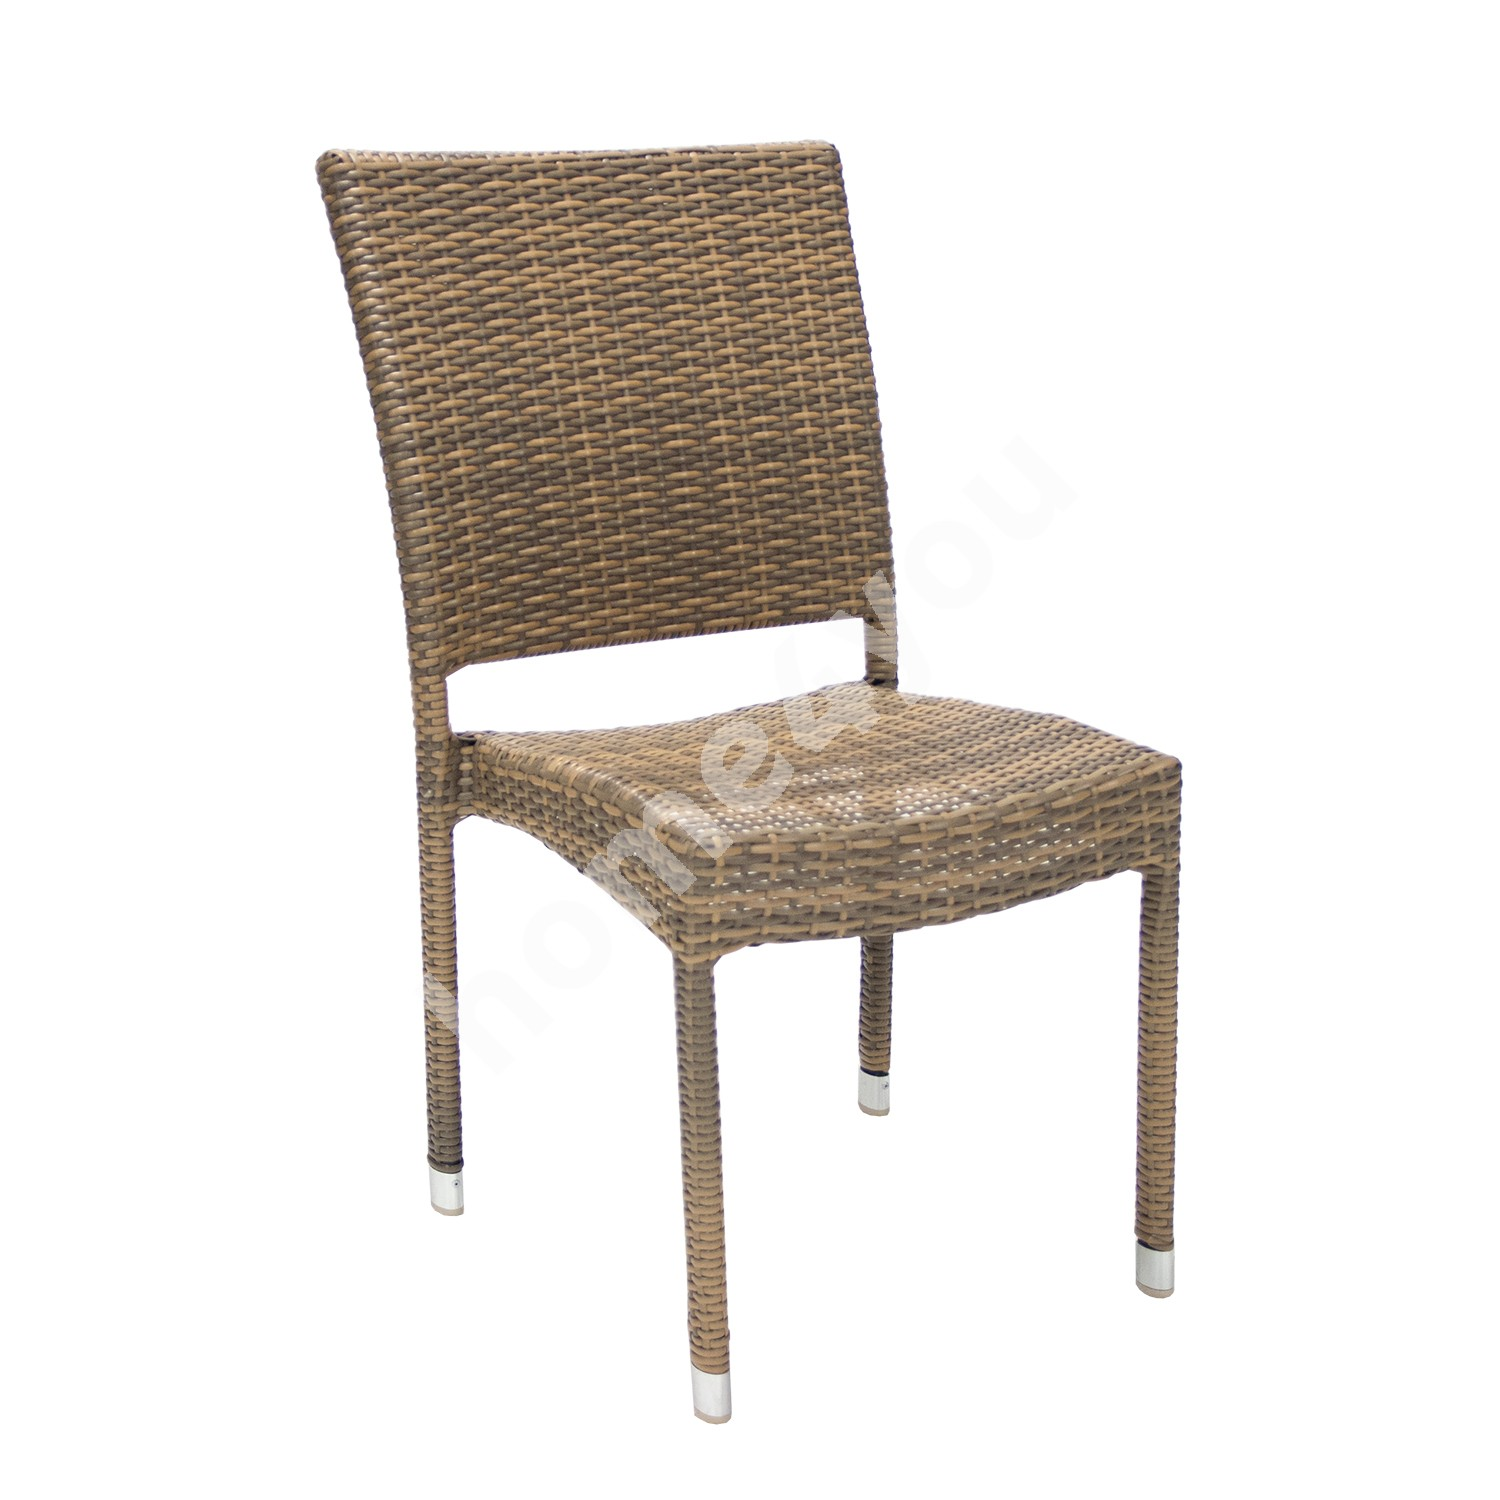 Chair WICKER-3 60x49,5xH92,5cm, aluminum frame with plastic wicker, color: cappuccino